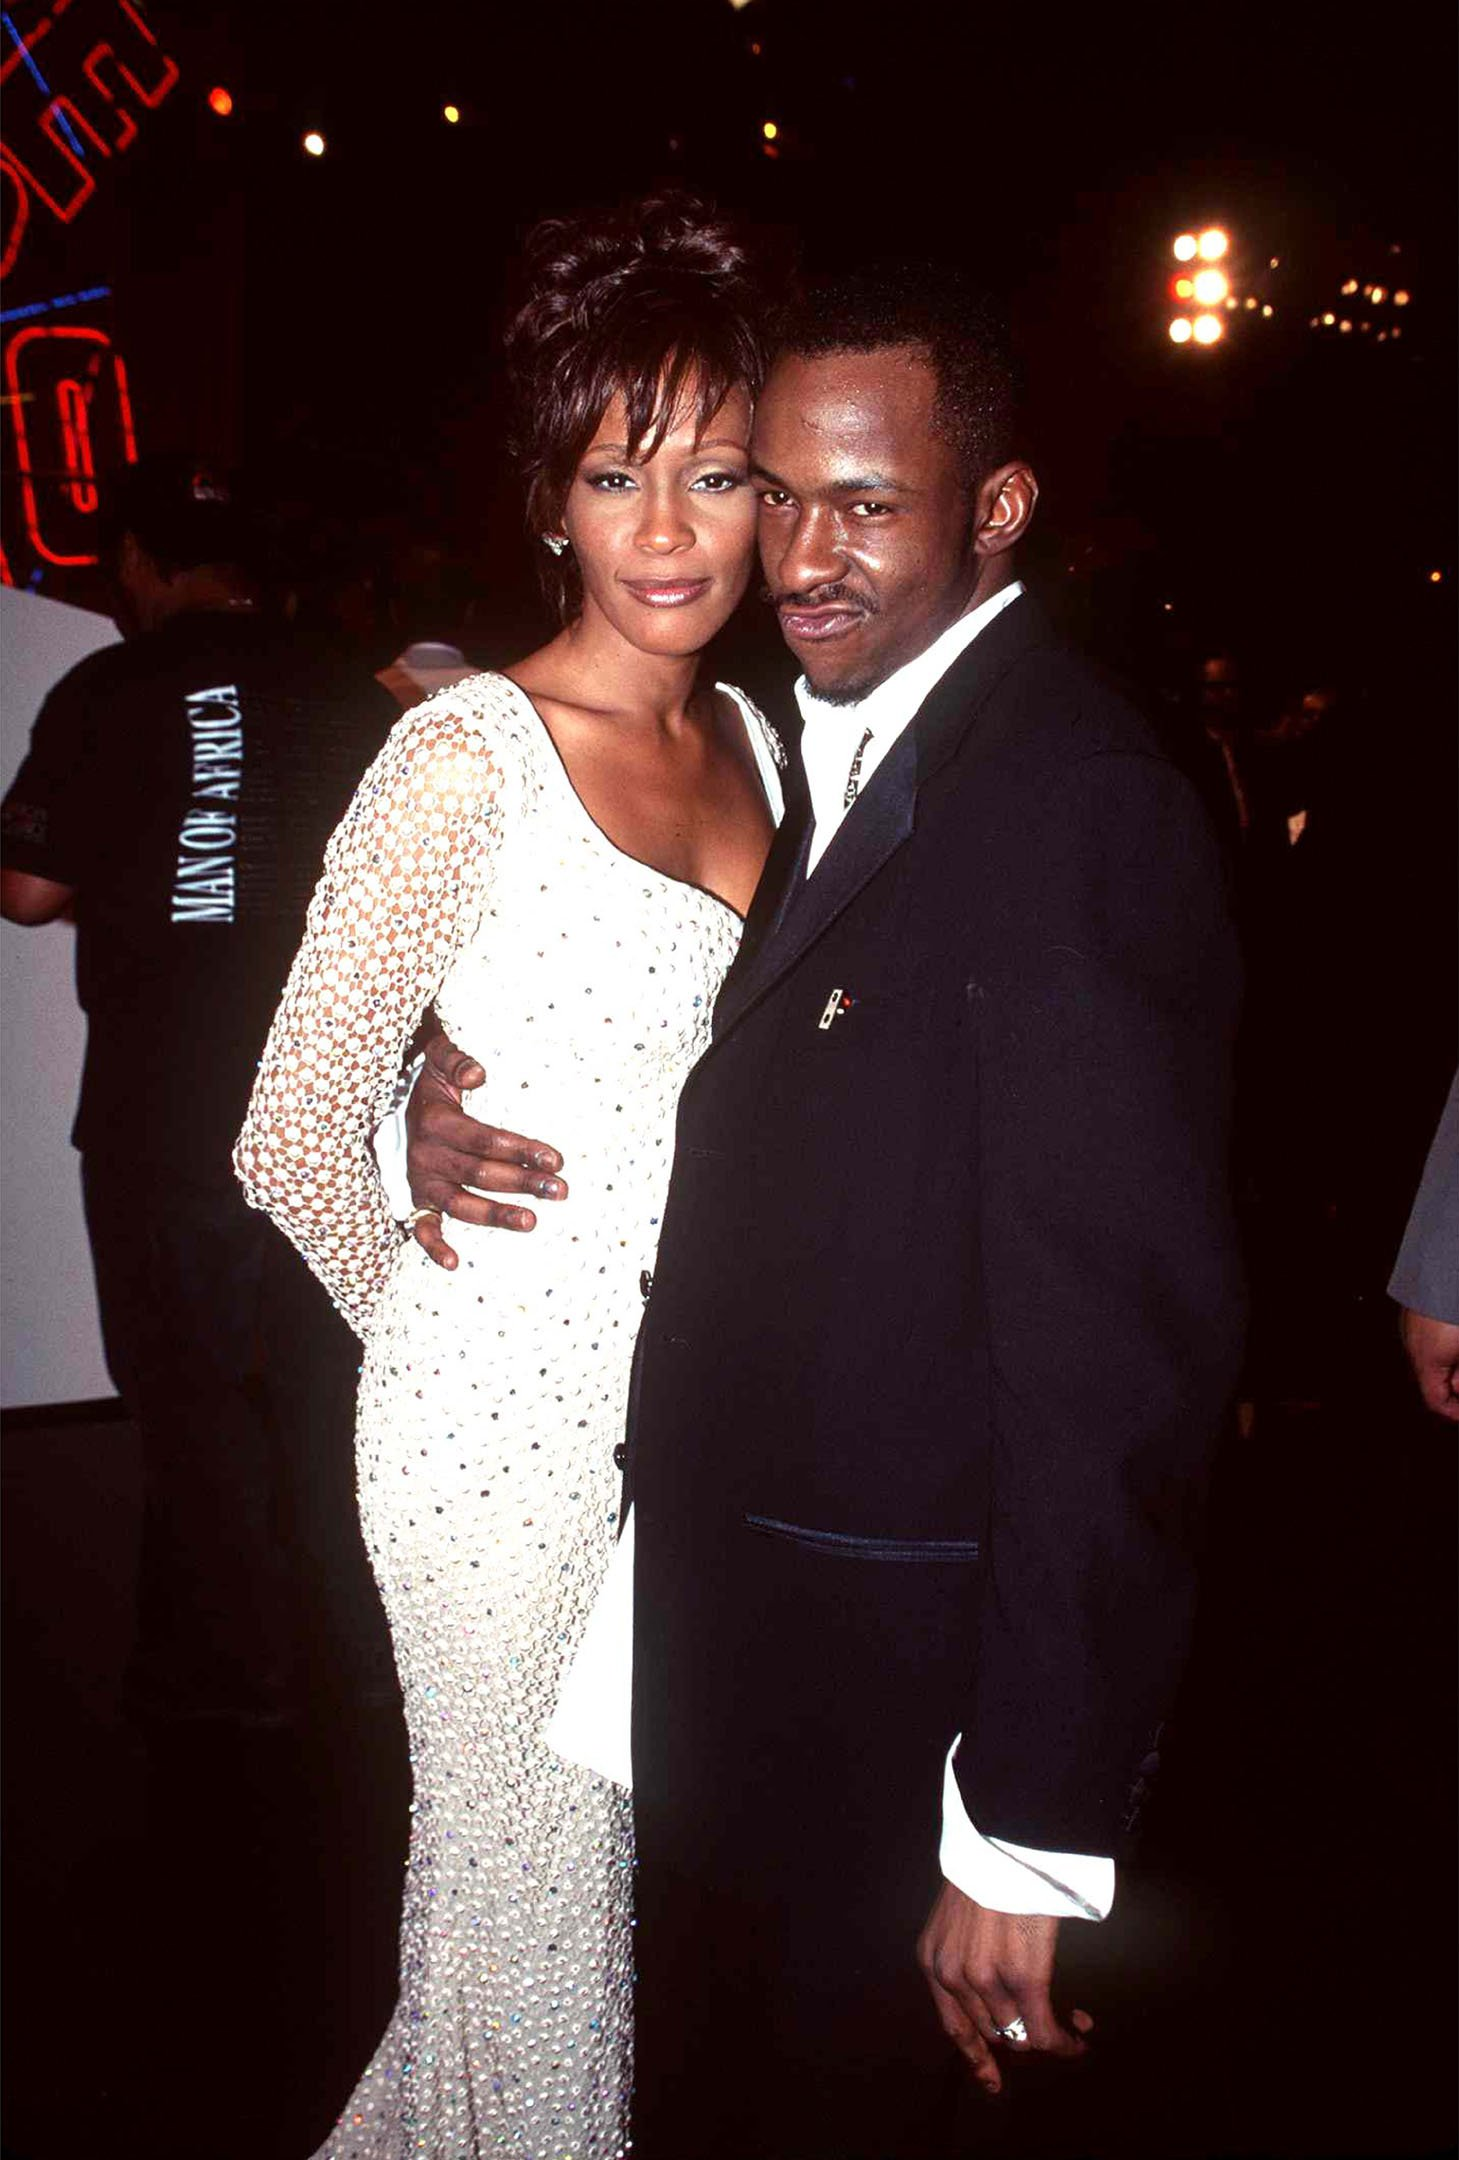 Bobby Brown and Whitney Houston in Los Angeles, CA on November 16, 1996.   Photo: Getty Images